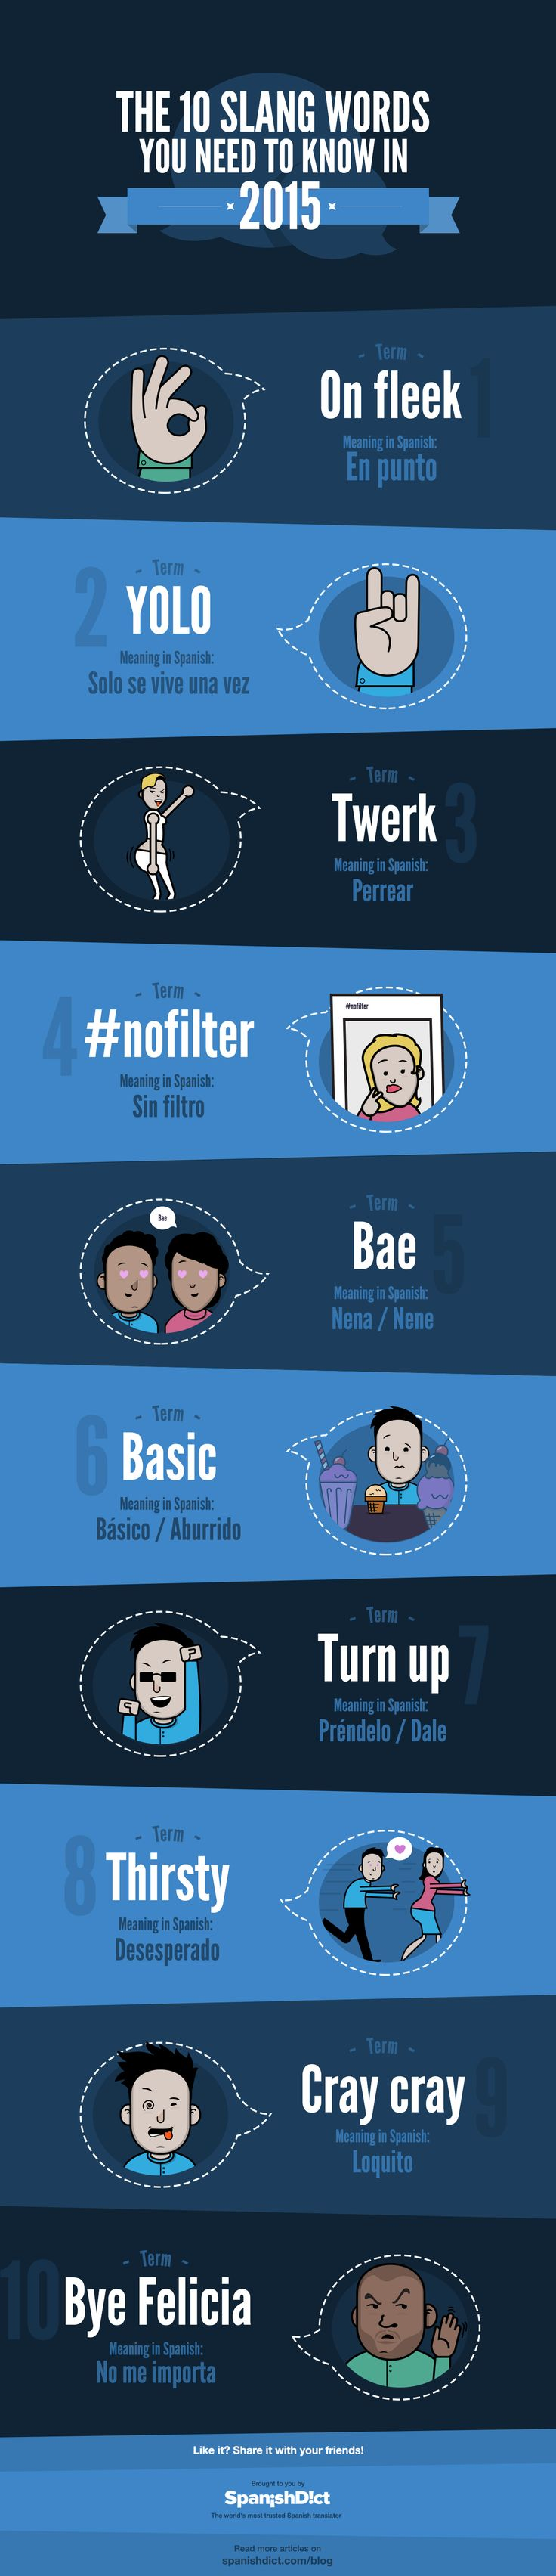 What are the trending slang terms of 2015? Check out the infographic below with the top 10 terms of 2015, as well as their meanings in Spanish!